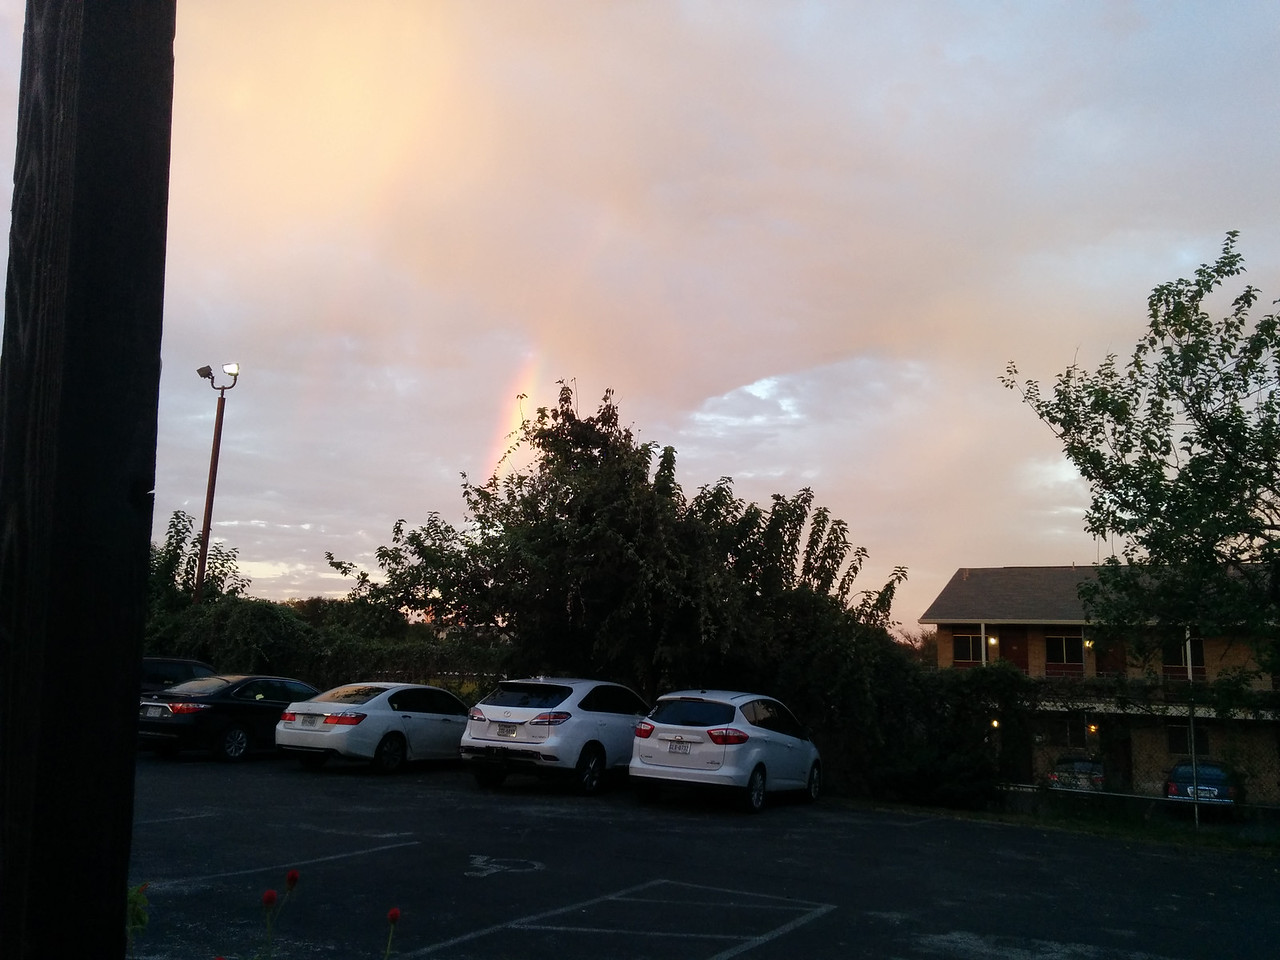 super cool rainbow we spotted while waiting for our table at Contigo